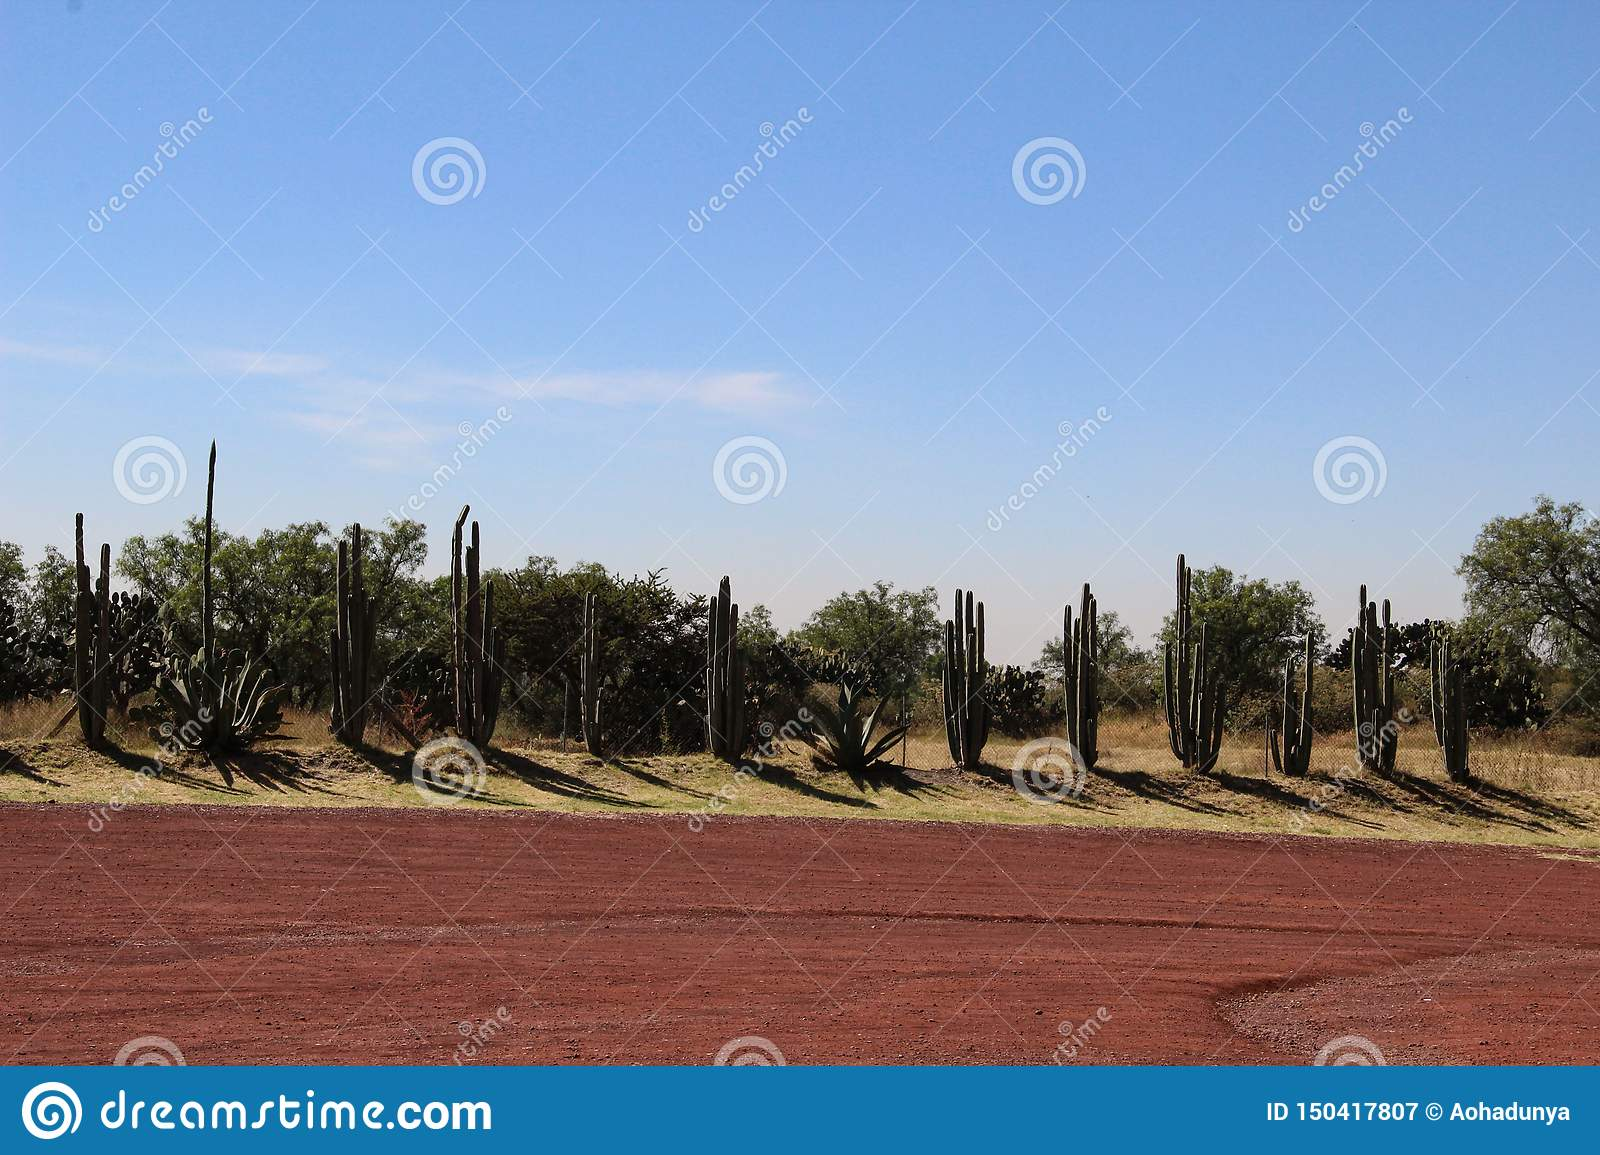 Cactus flowers line up in the desert